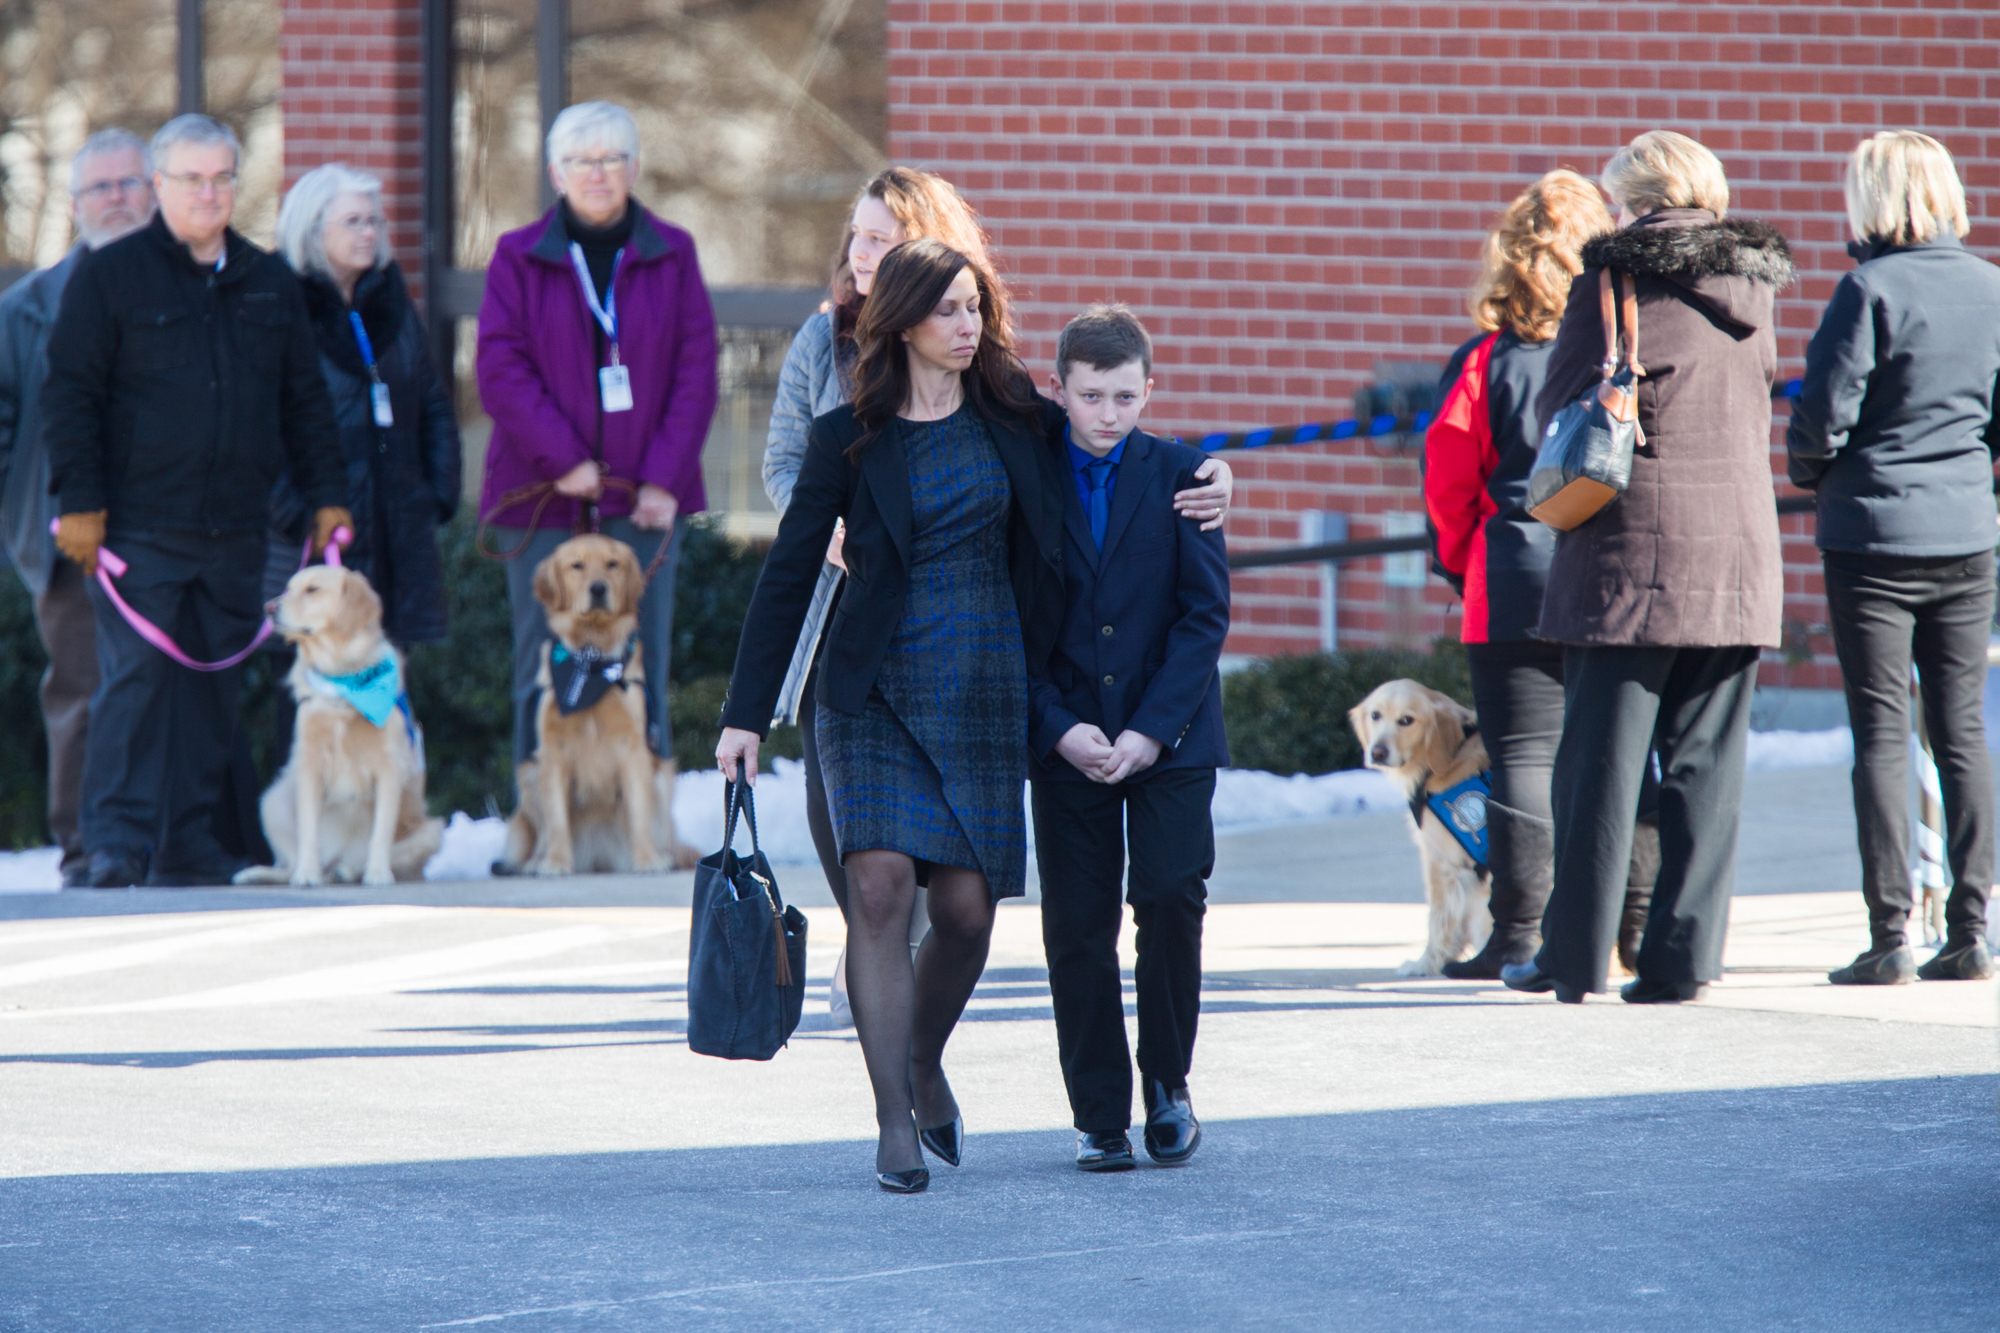 Family, friends and community members leave at the end of the funeral for Christopher Ruckman, 14, and his brother John Ruckman, 12, on Friday, March 9, 2018, at Our Savior's Lutheran Church in Rockford. [SCOTT P. YATES/RRSTAR.COM STAFF]